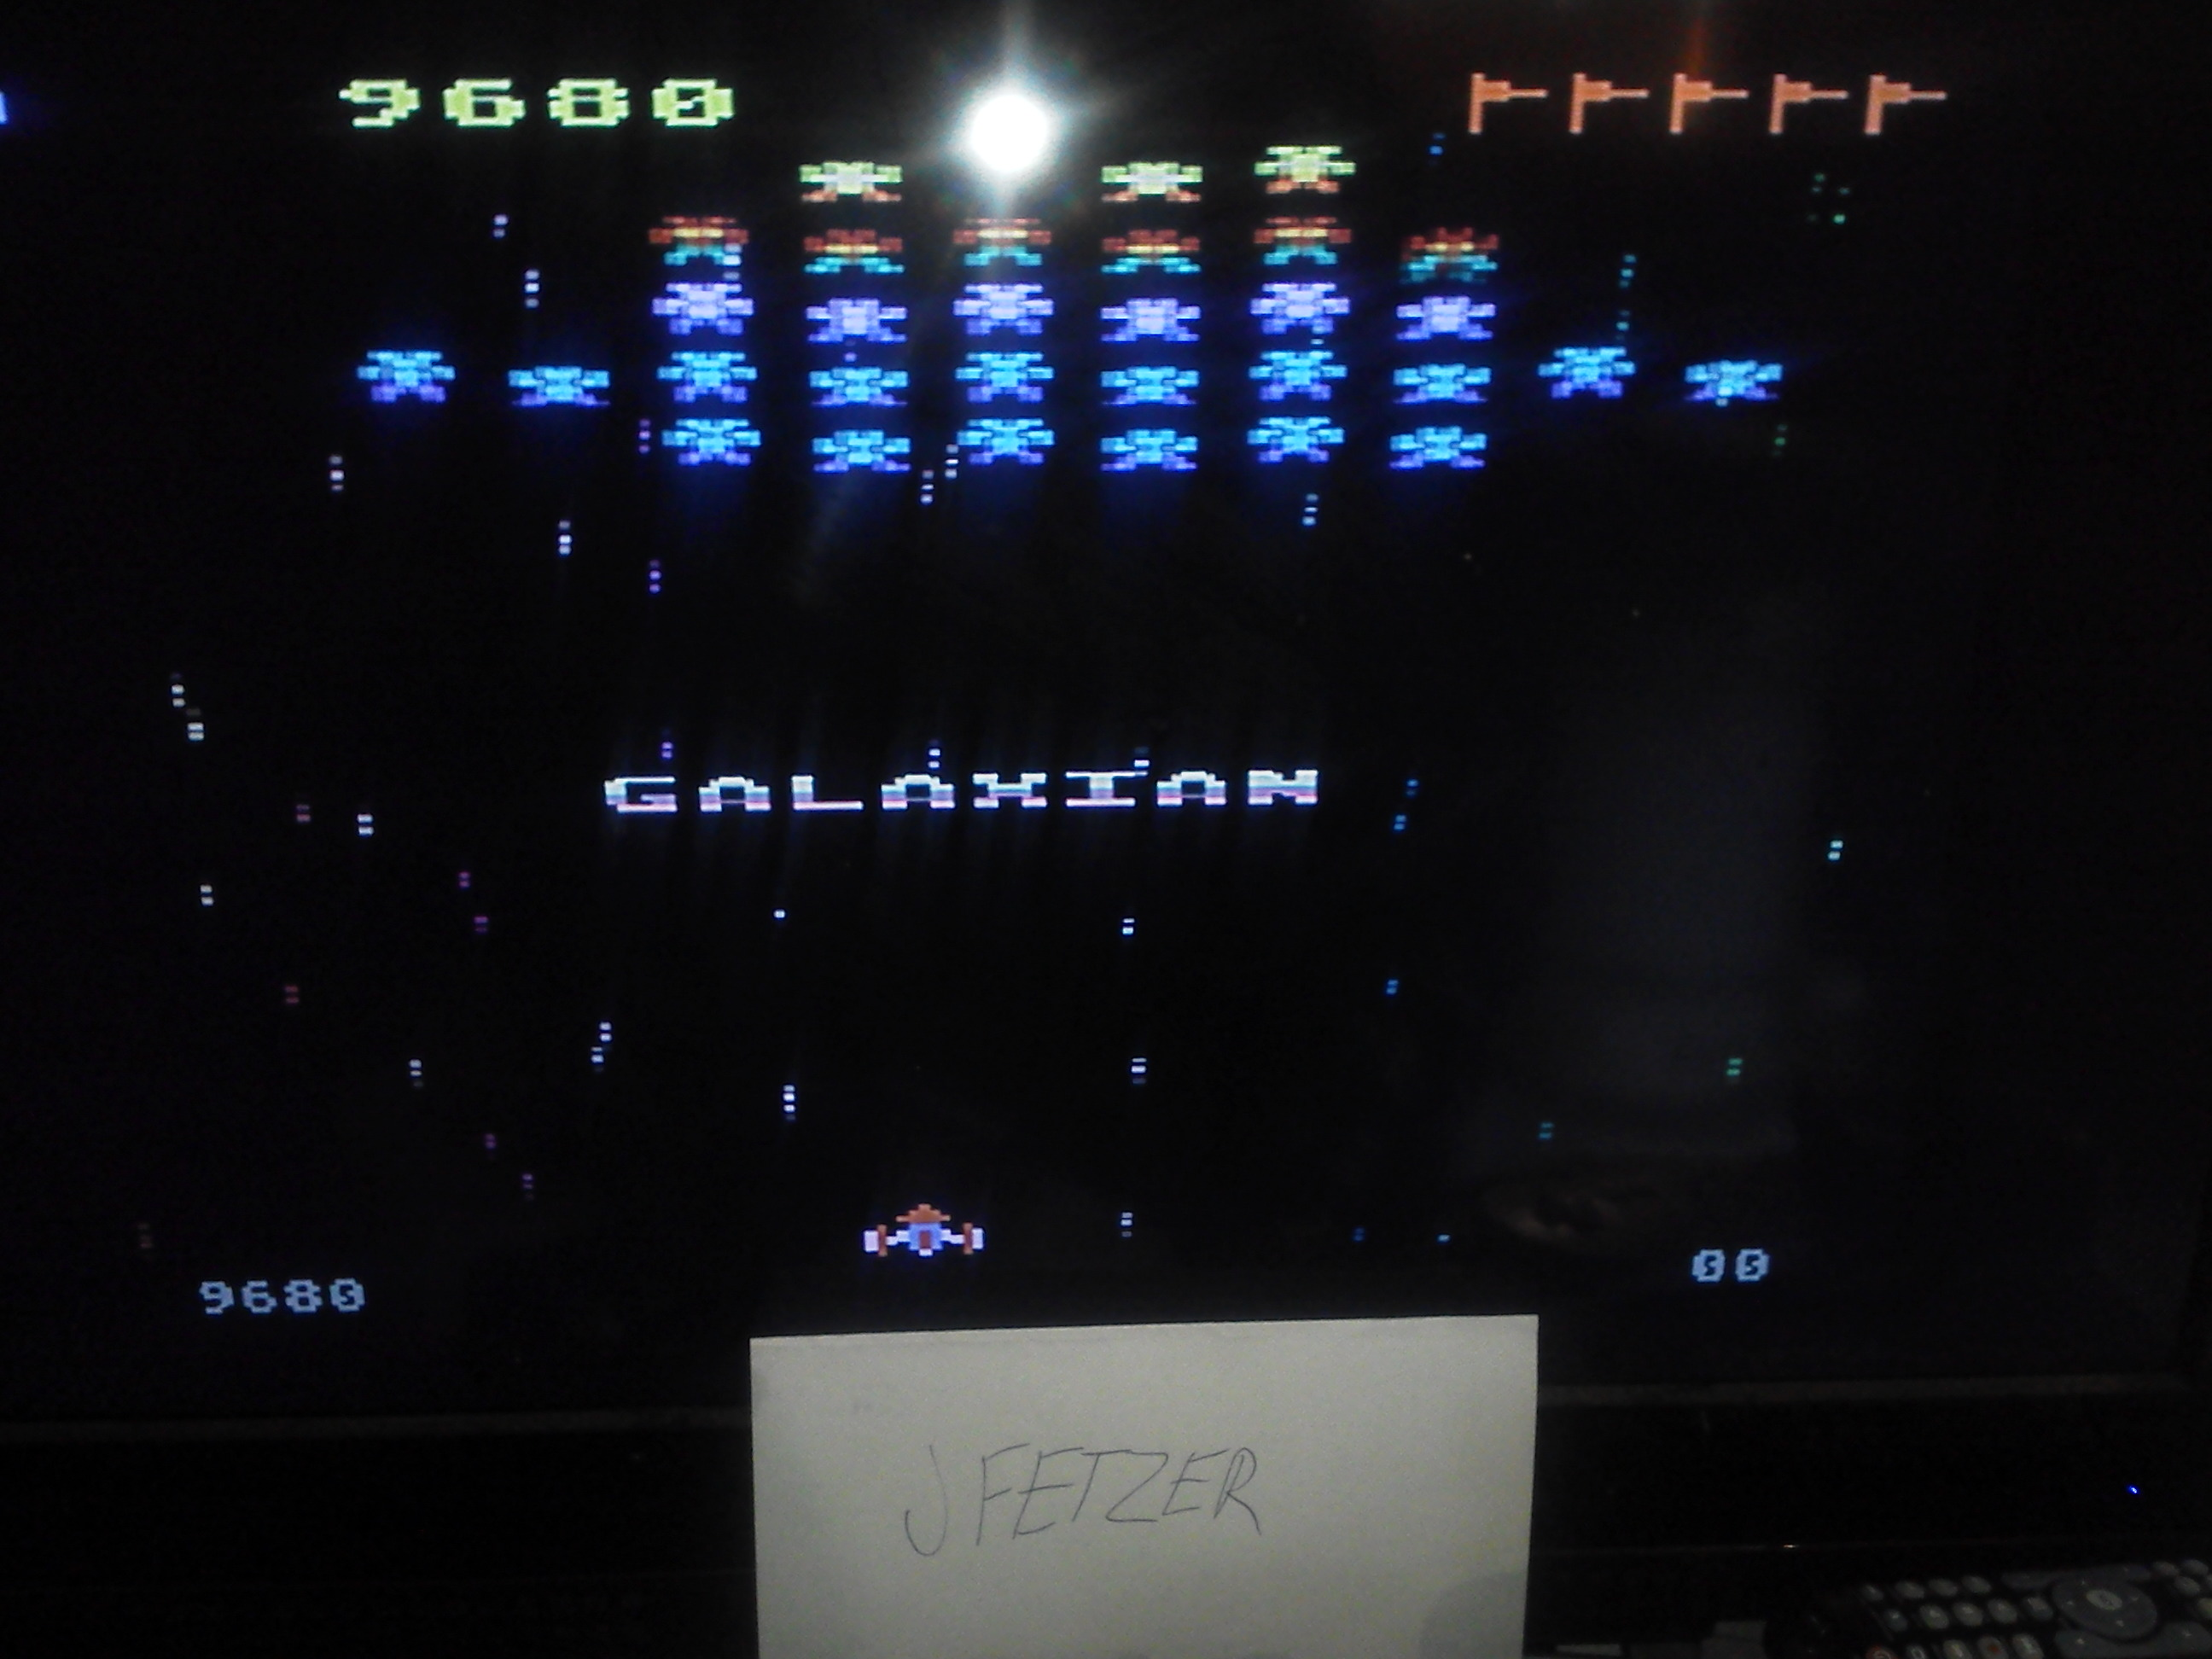 jfetzer: Galaxian: Skill Level 1 (Atari 5200 Emulated) 9,680 points on 2014-11-27 12:42:49